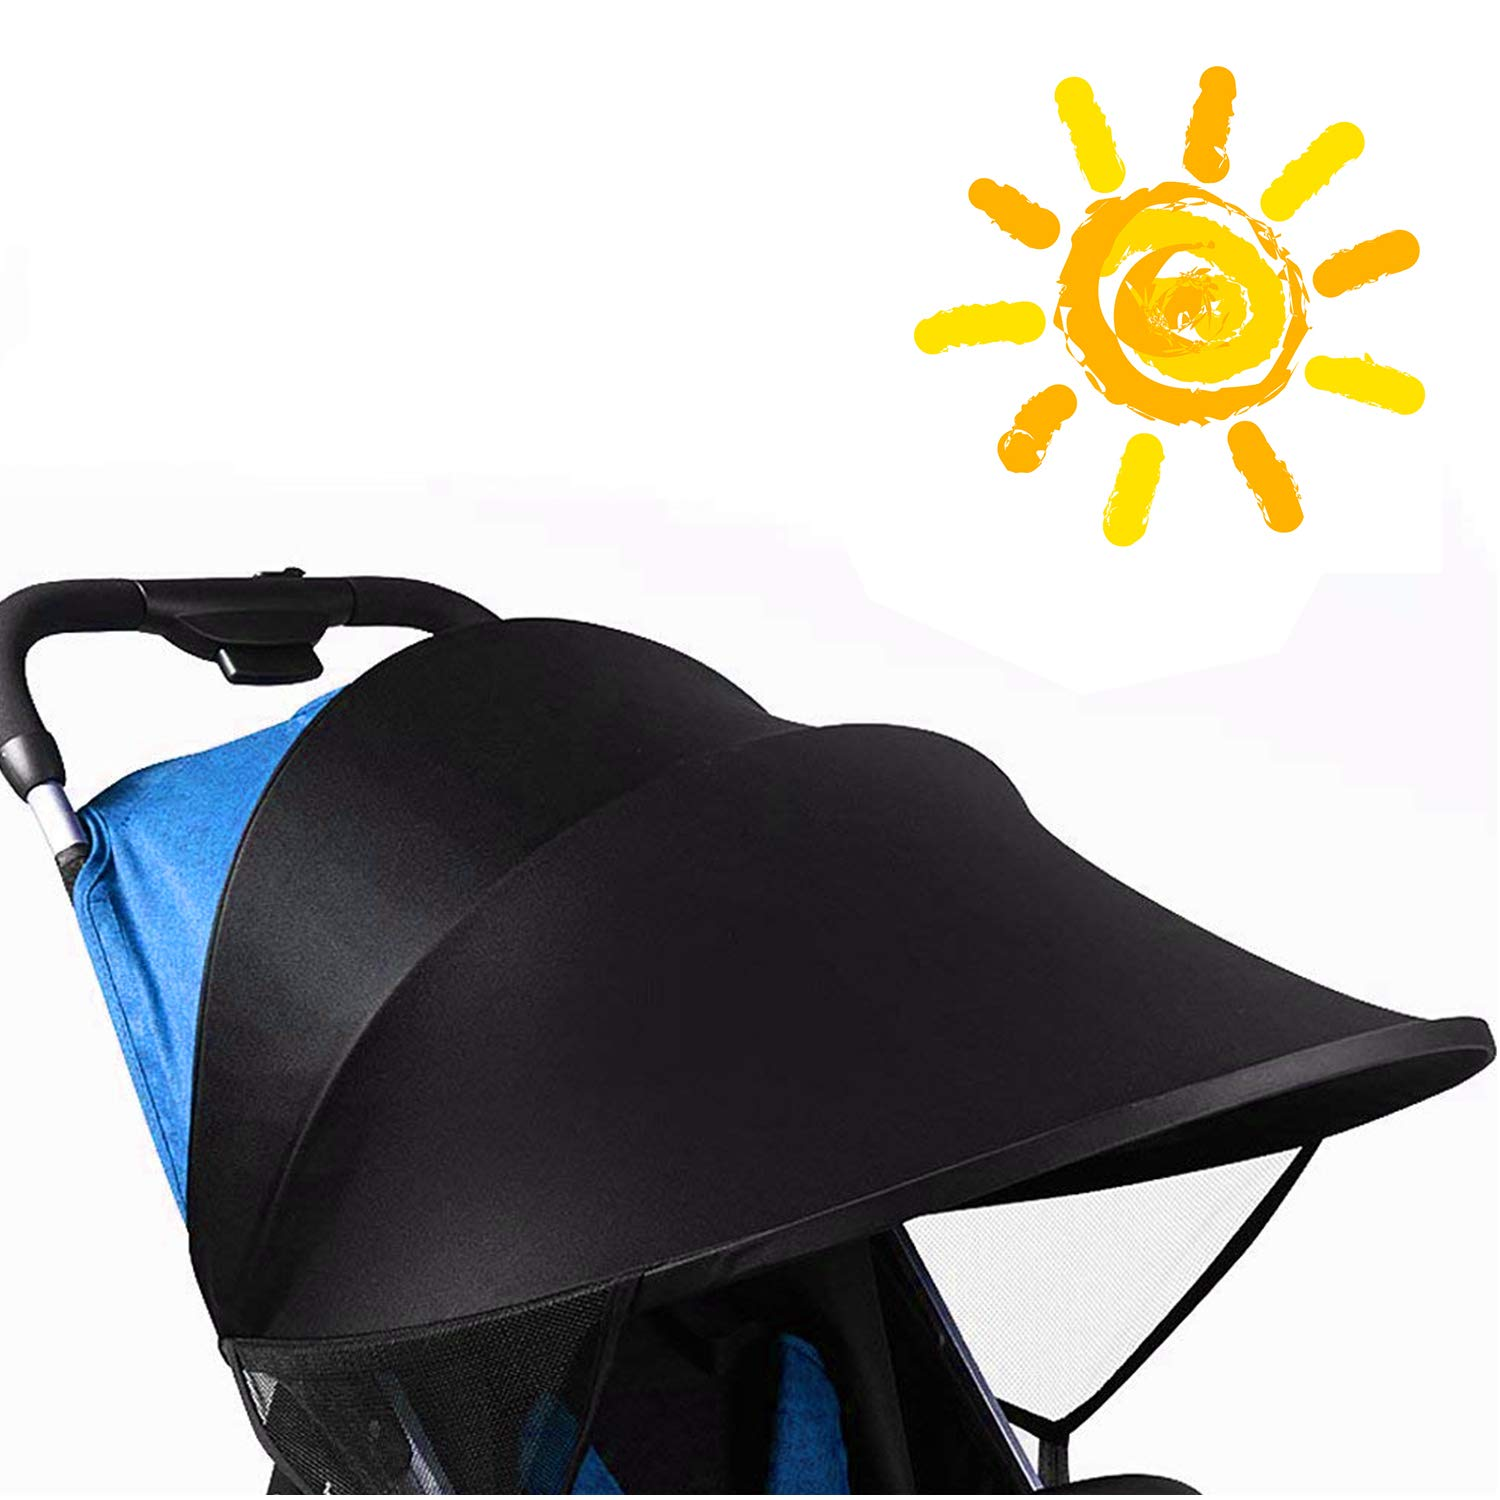 Universal Stroller Sun Shade Cover, Large Shade Maker Sun Shade Canopy UV Protection Rays Cover,Anti-UV Windproof Awning Sunshade for Stroller Pram Buggy Pushchair BORUD